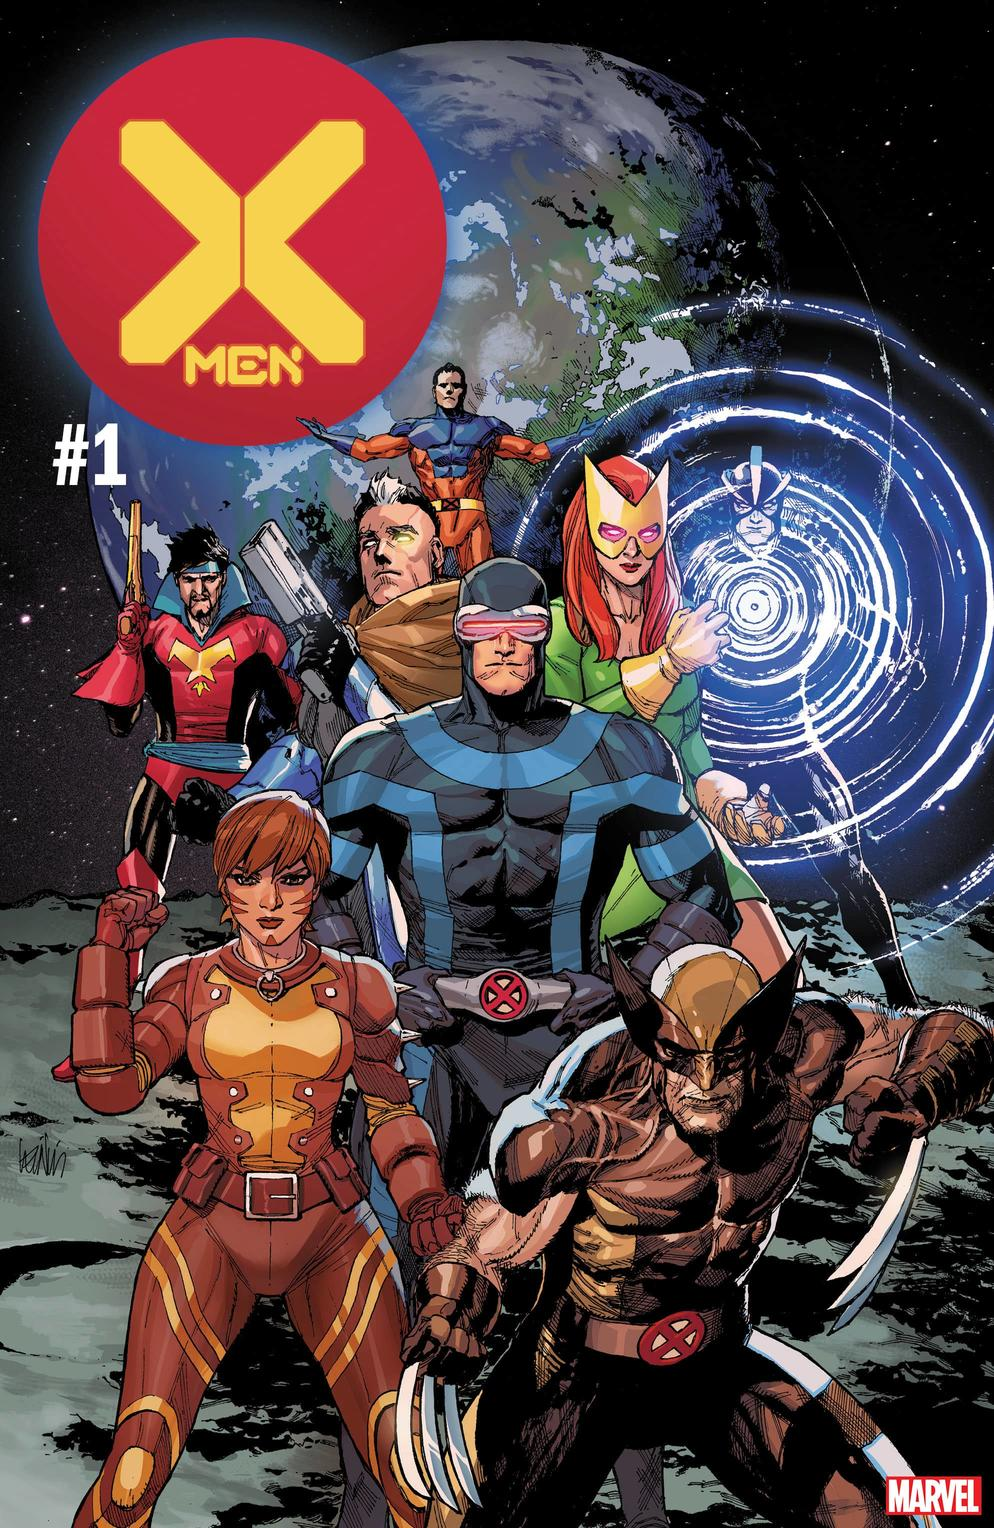 Jonathan Hickman brings forth the X-Men back into the spotlight  Credit: Stan Lee, Jack Kirby, Chris Claremont, Robert Liefield  ©Marvel Comics 2019